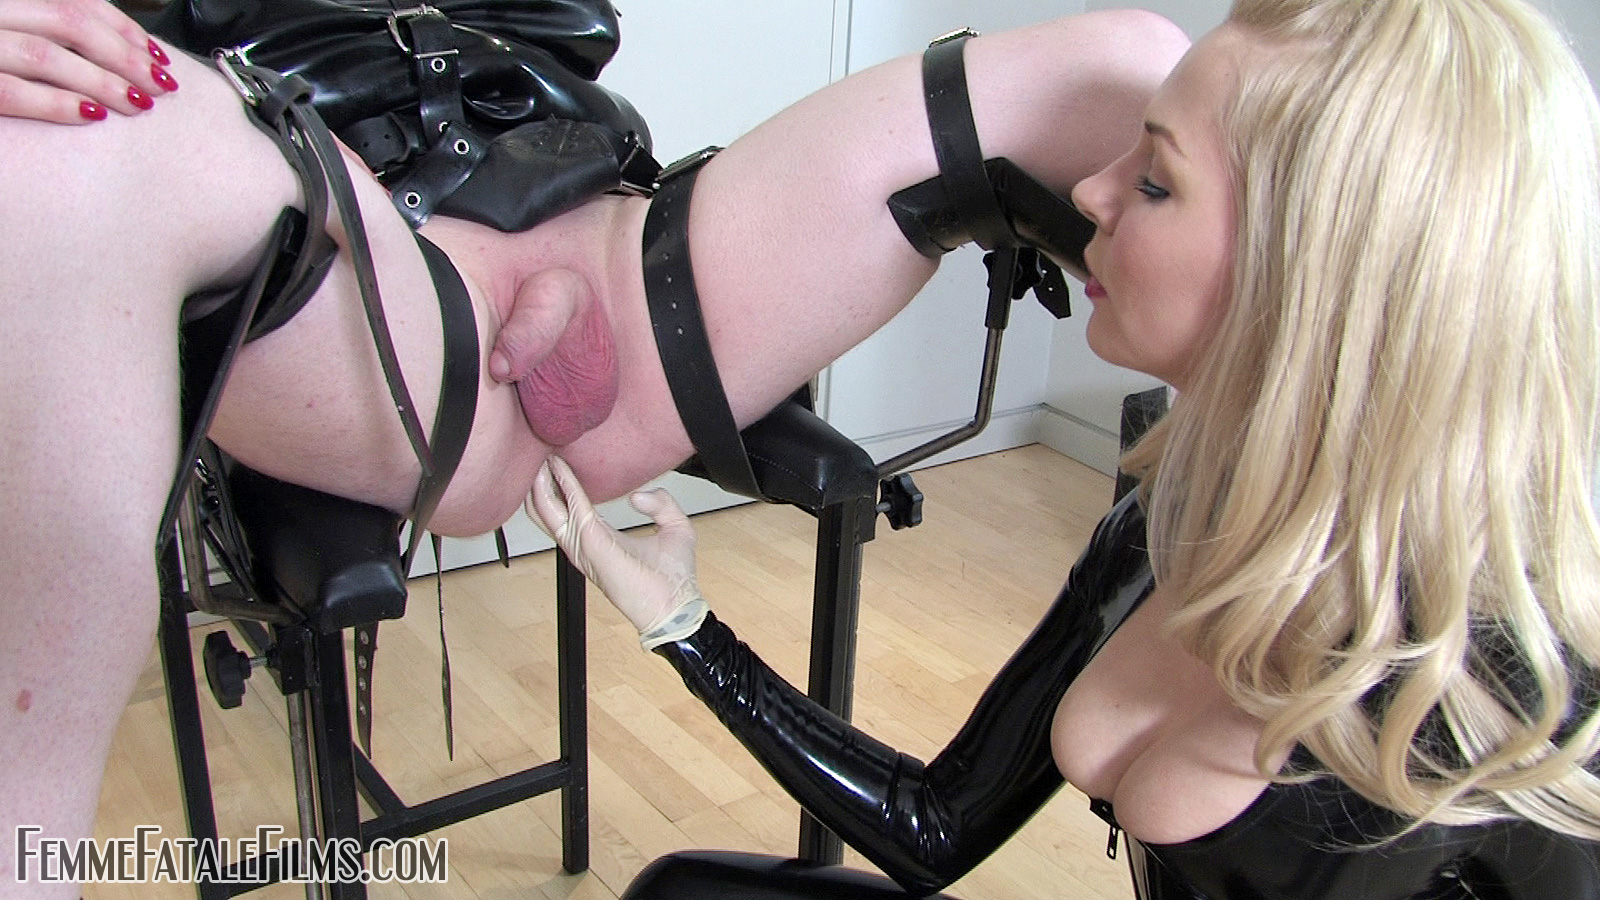 image 2 dommes fisting and footing a slave